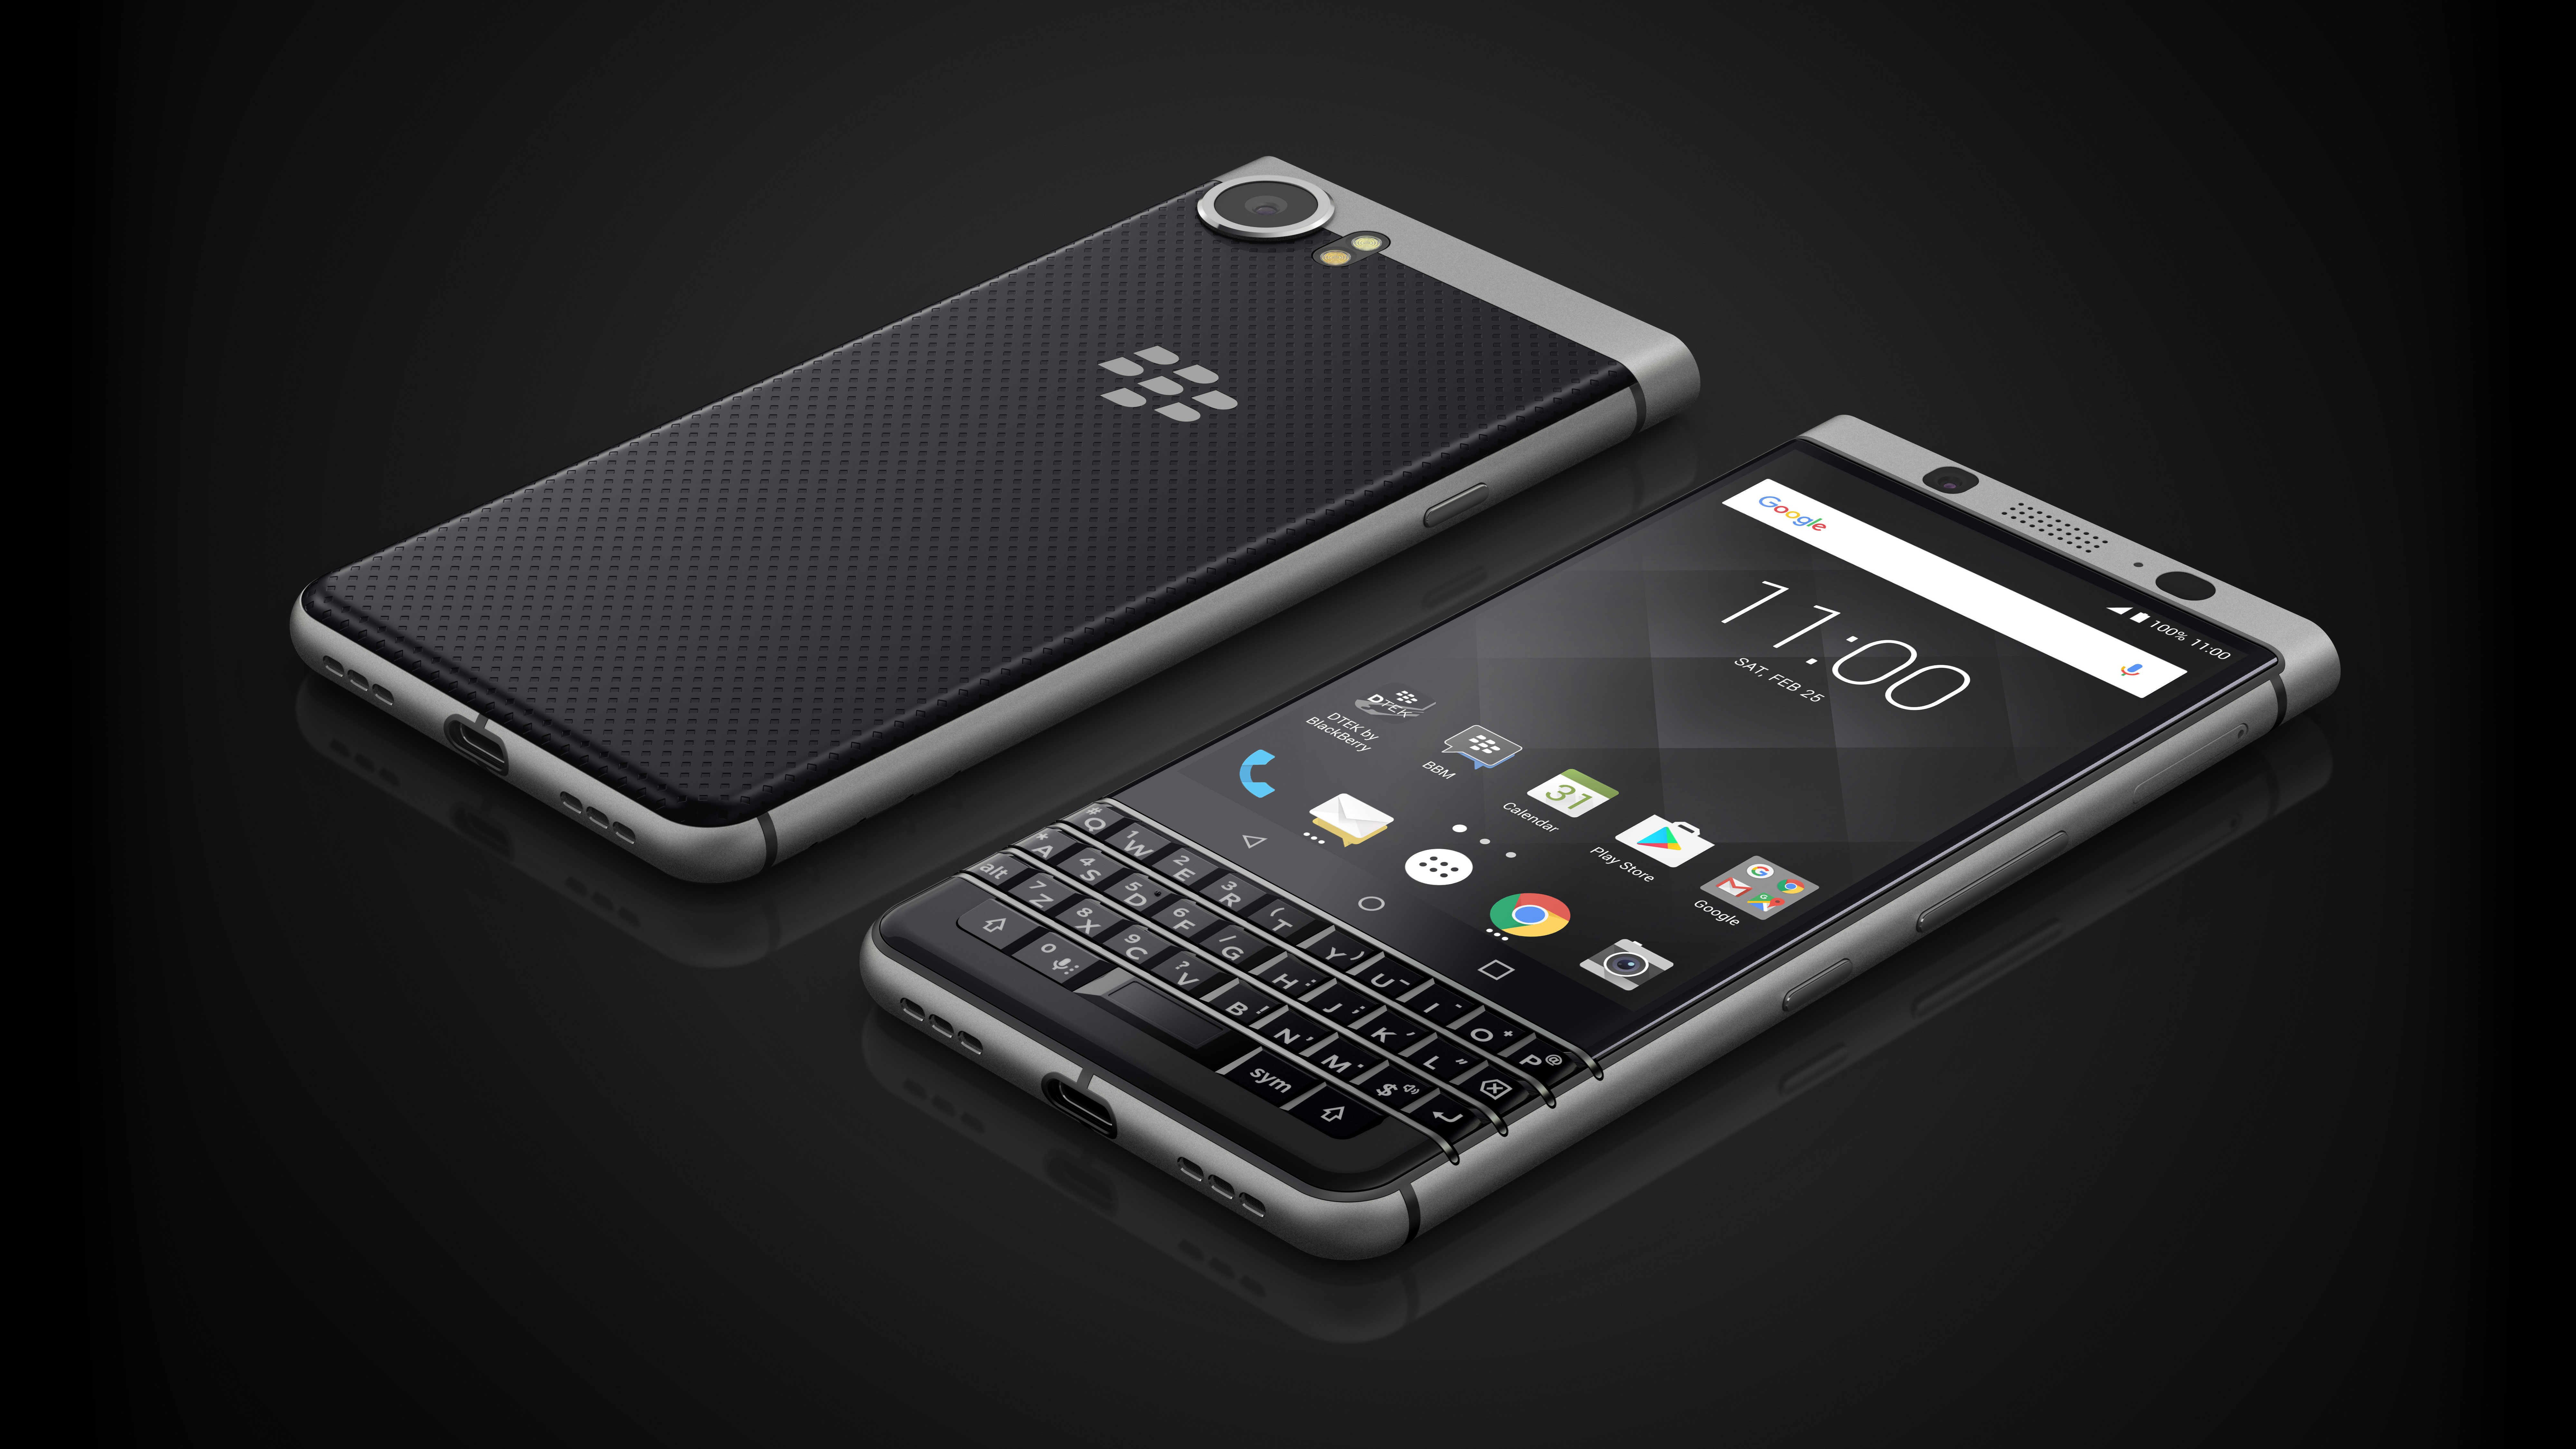 A new BlackBerry phone with no keyboard is on the way soon